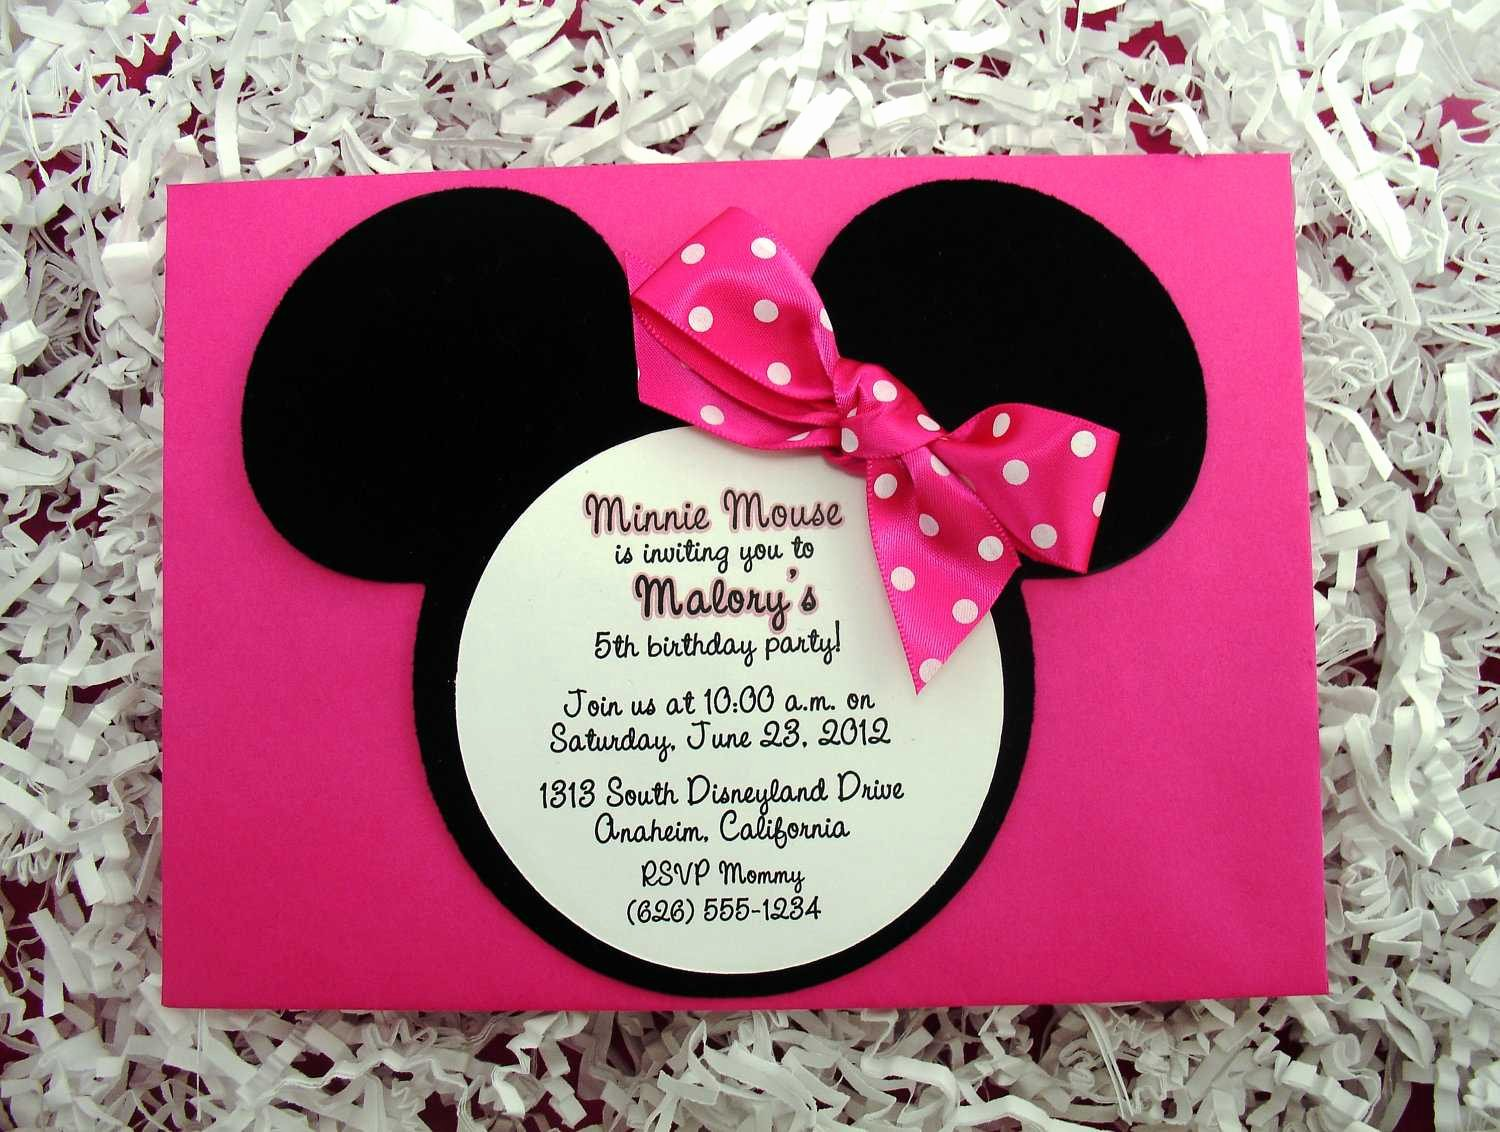 Minnie Mouse Invitation Wording Beautiful Mini Mouse Birthday Invitation